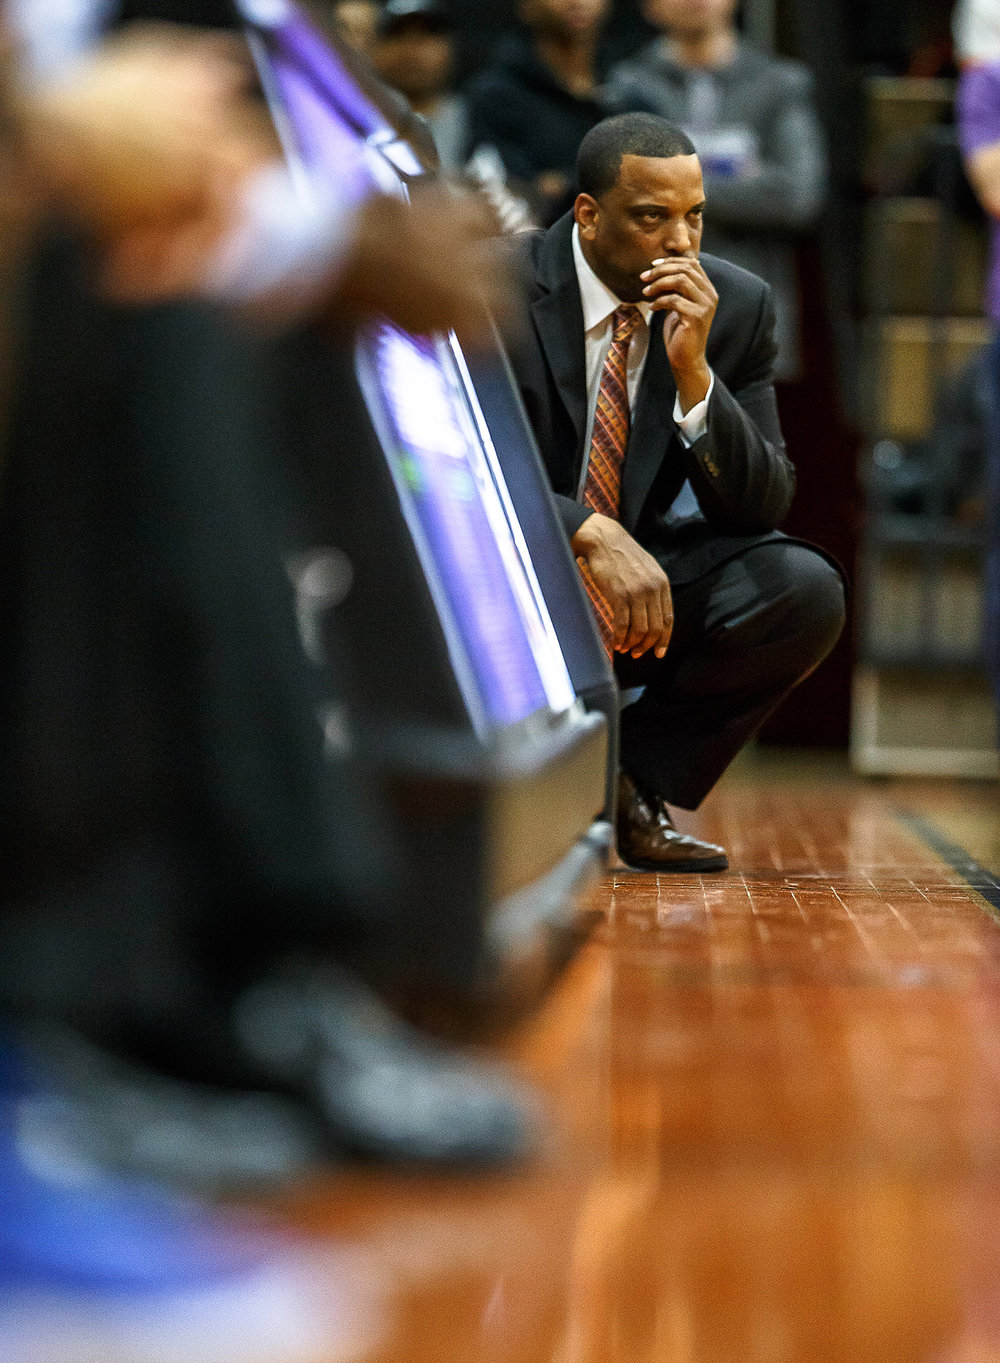 Lanphier boys basketball head coach Blake Turner watches as his team takes on Decatur MacArthur in the first half at Lober-Nika gymnasium, Saturday, Feb. 10, 2018, in Springfield, Ill. [Justin L. Fowler/The State Journal-Register]